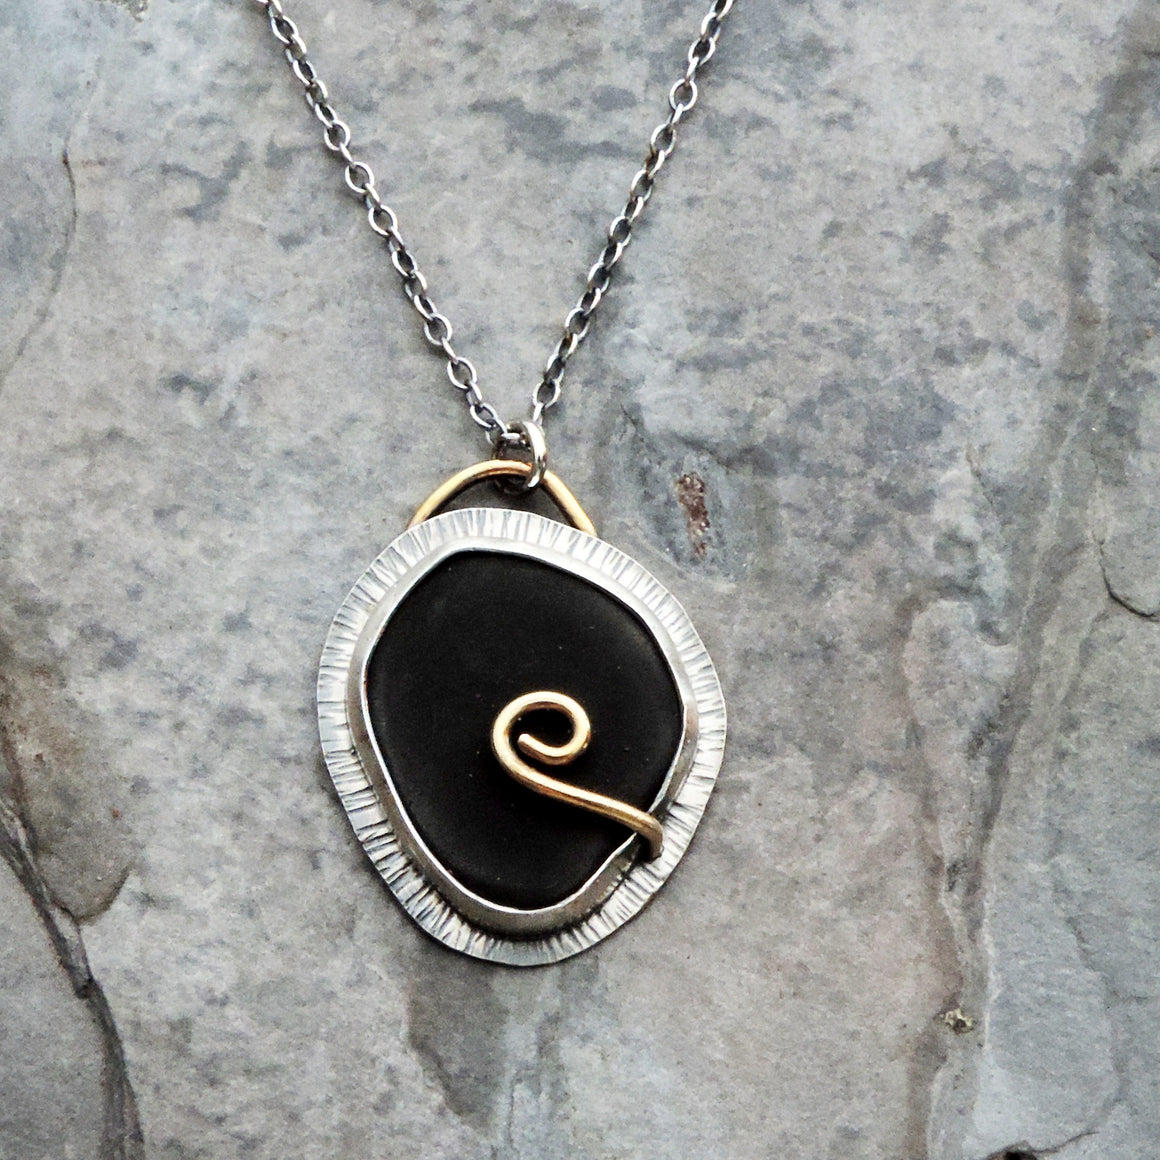 black silver and gold pendant necklace